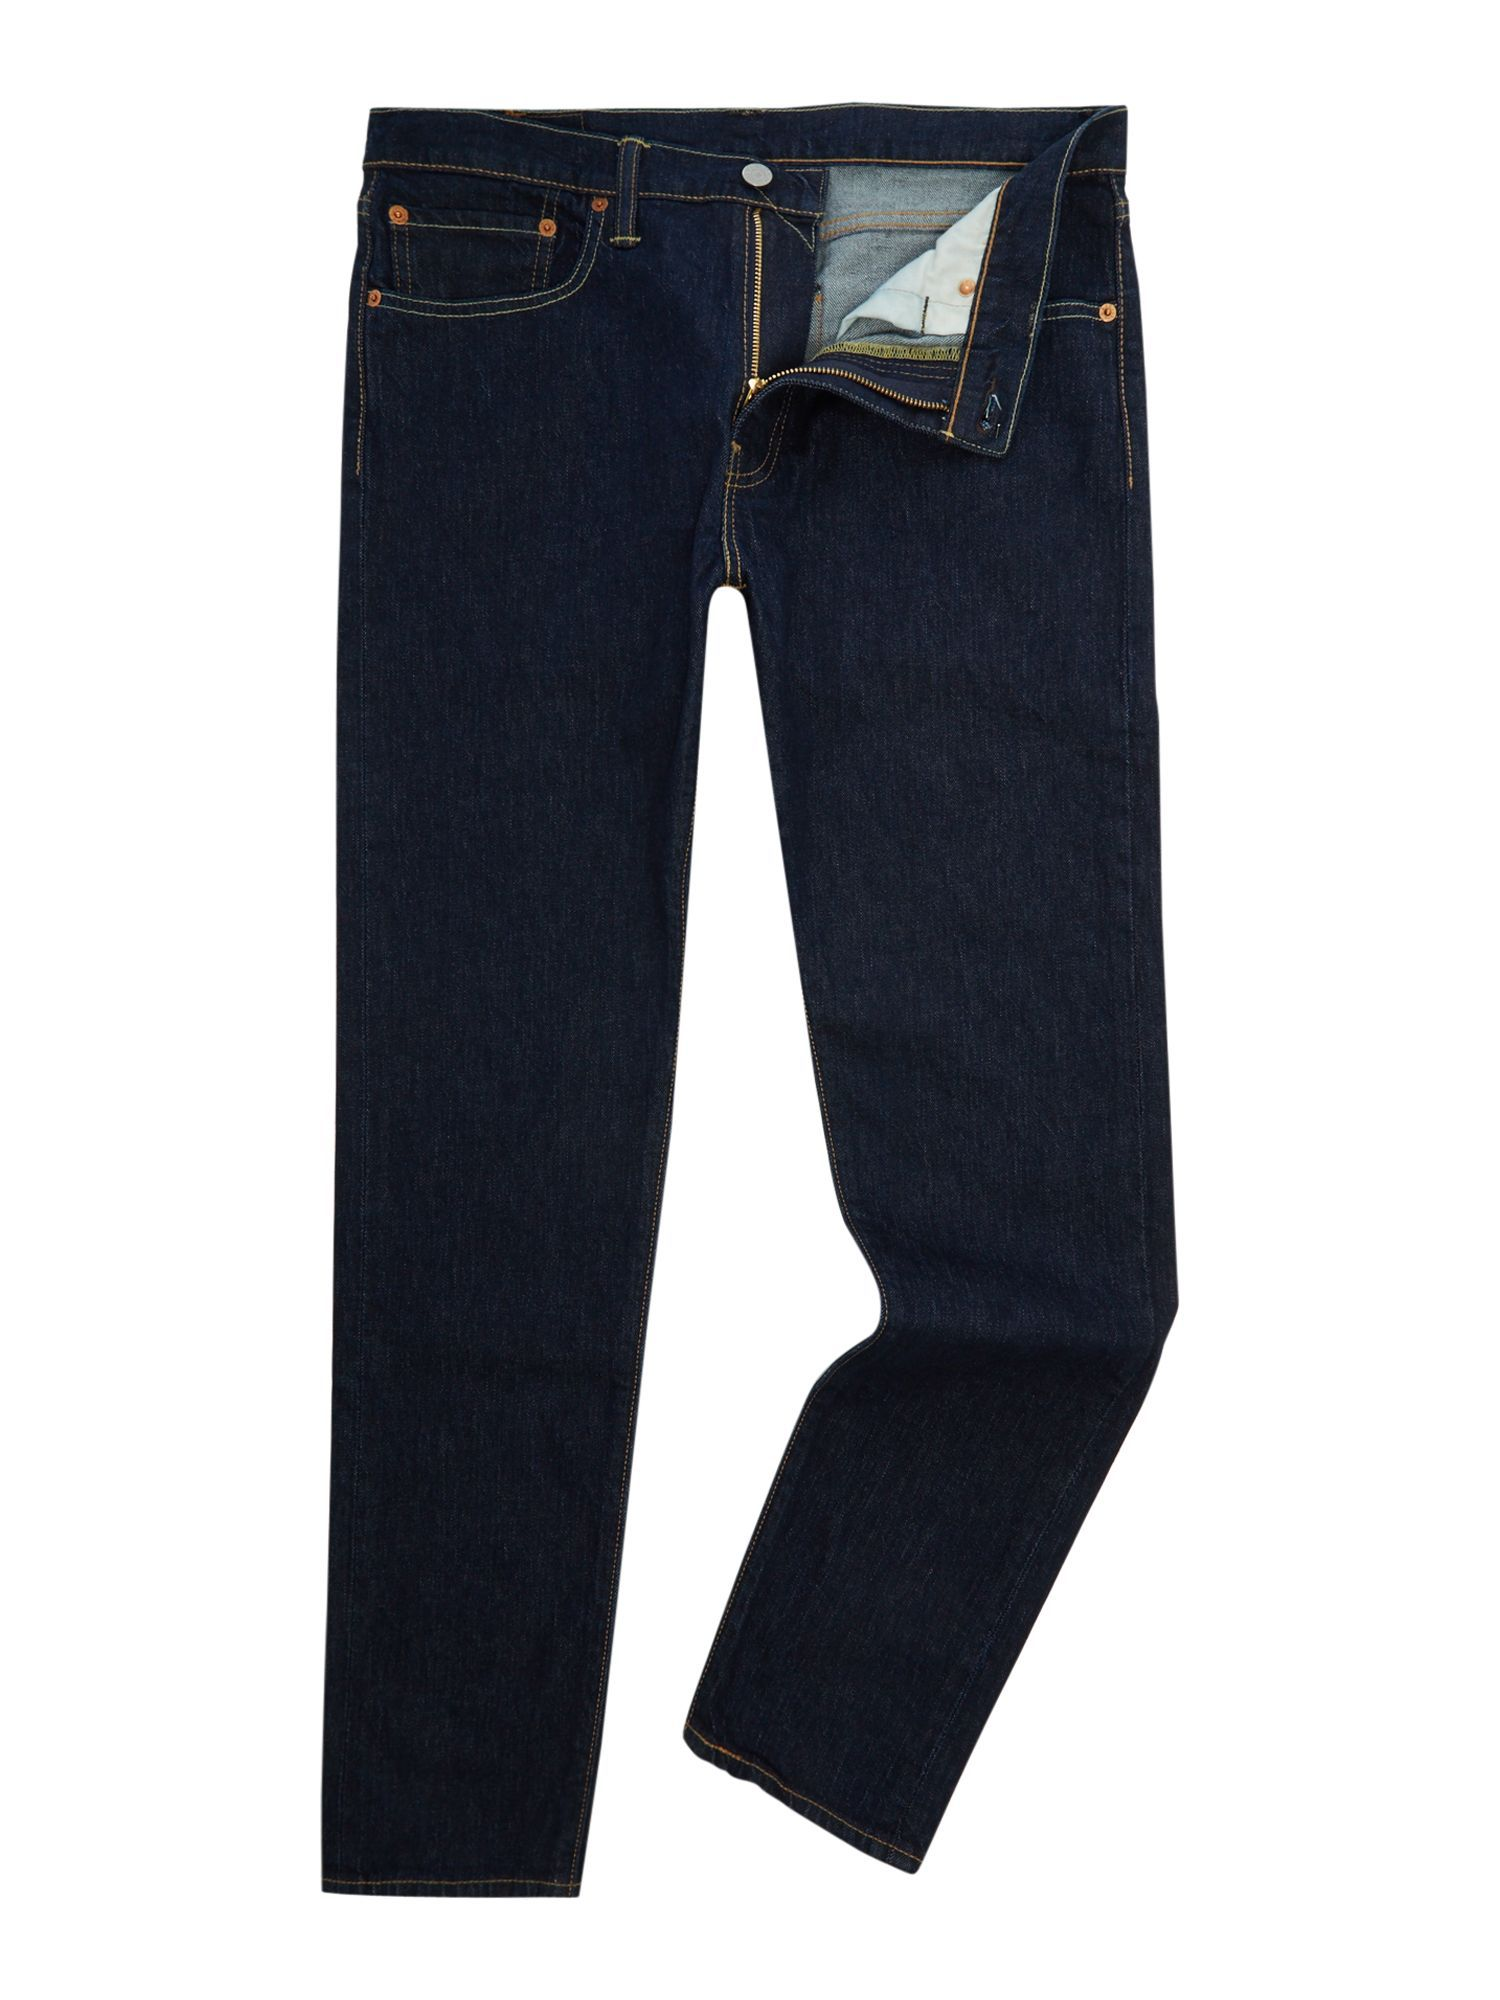 Levi's 512 Slim Taper Fit in Rock Cod Blue